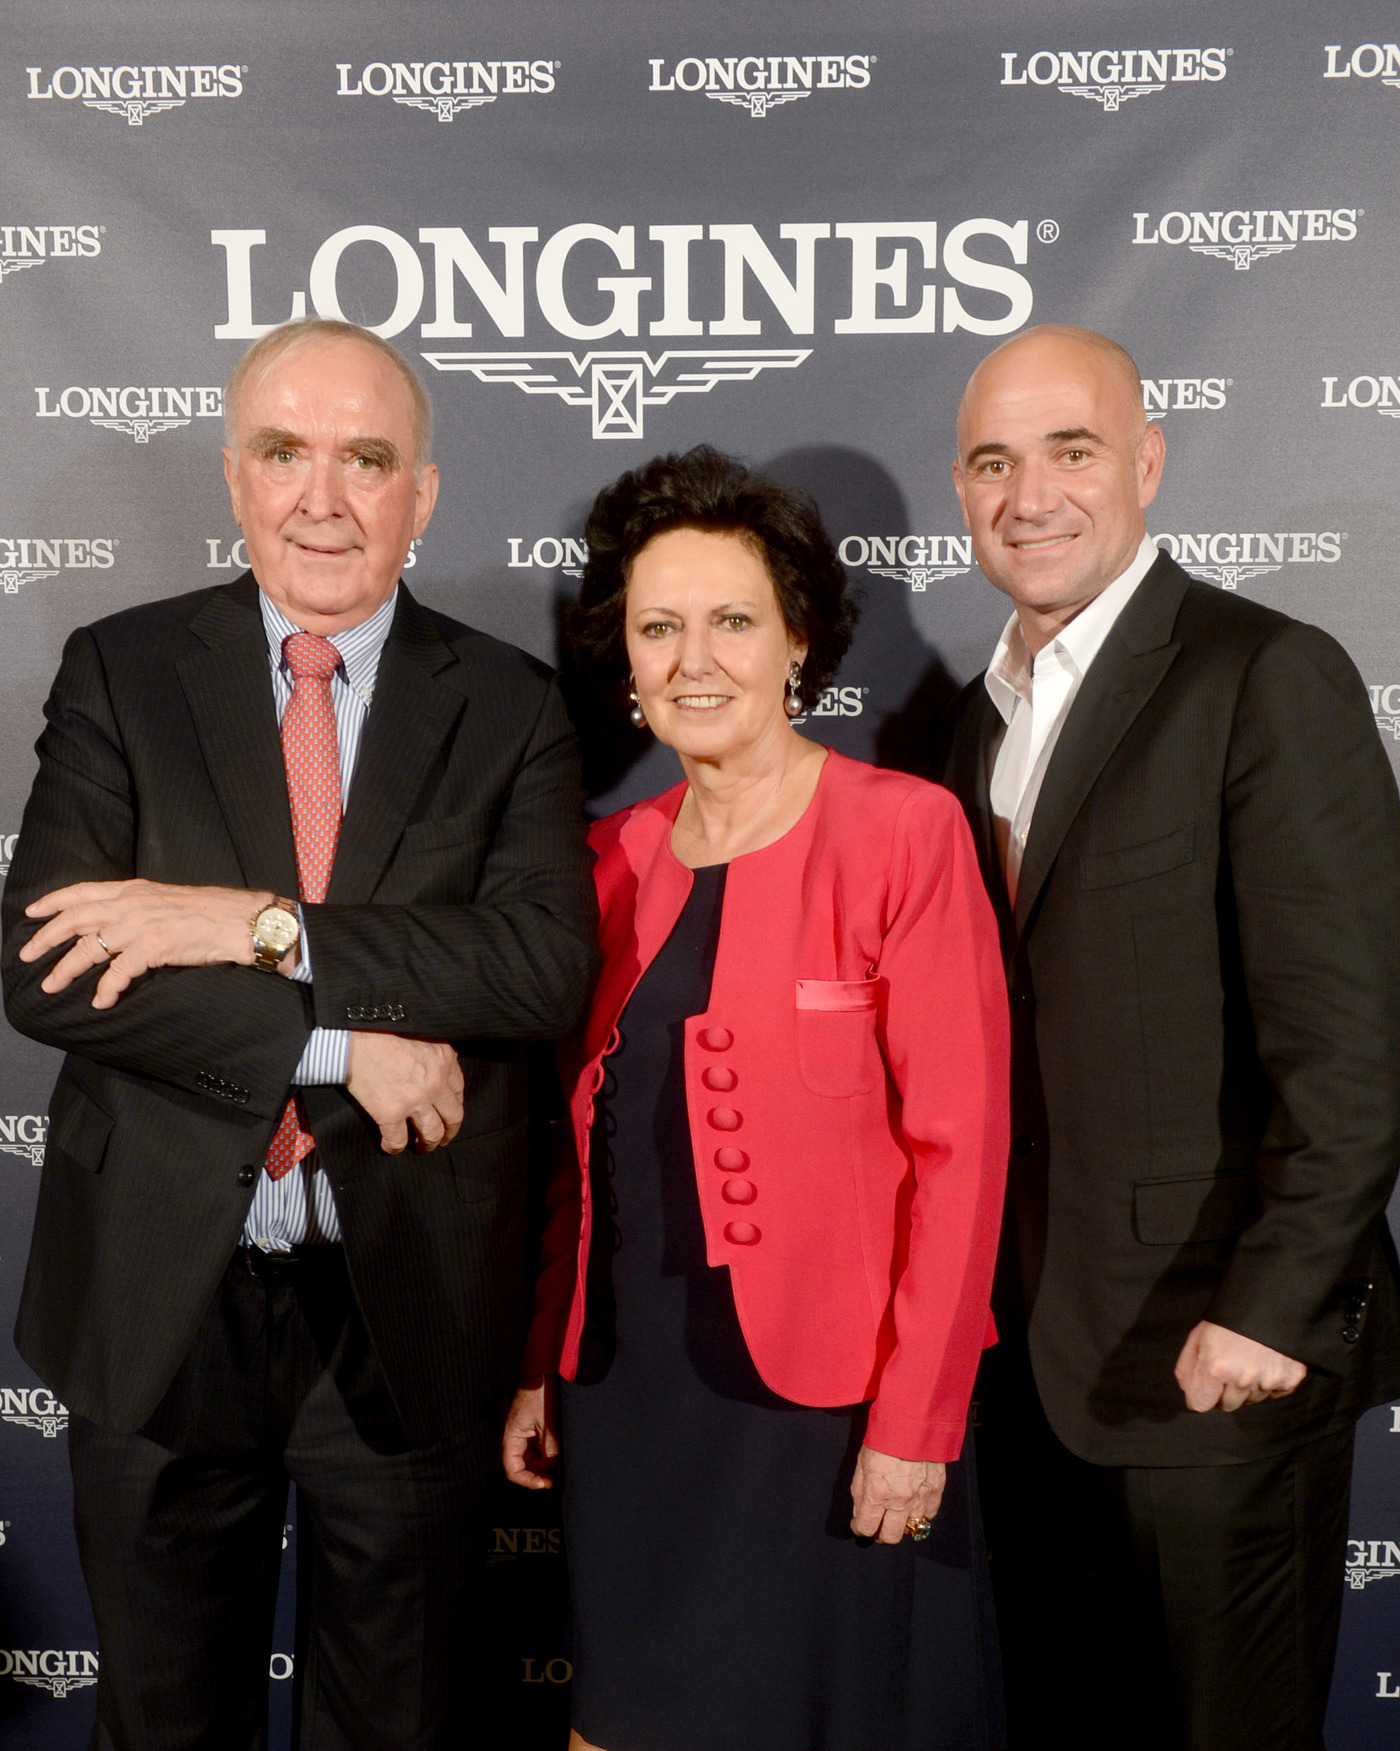 Longines Corporate Event: Longines Ambassador of Elegance Andre Agassi in Paris this weekend 3